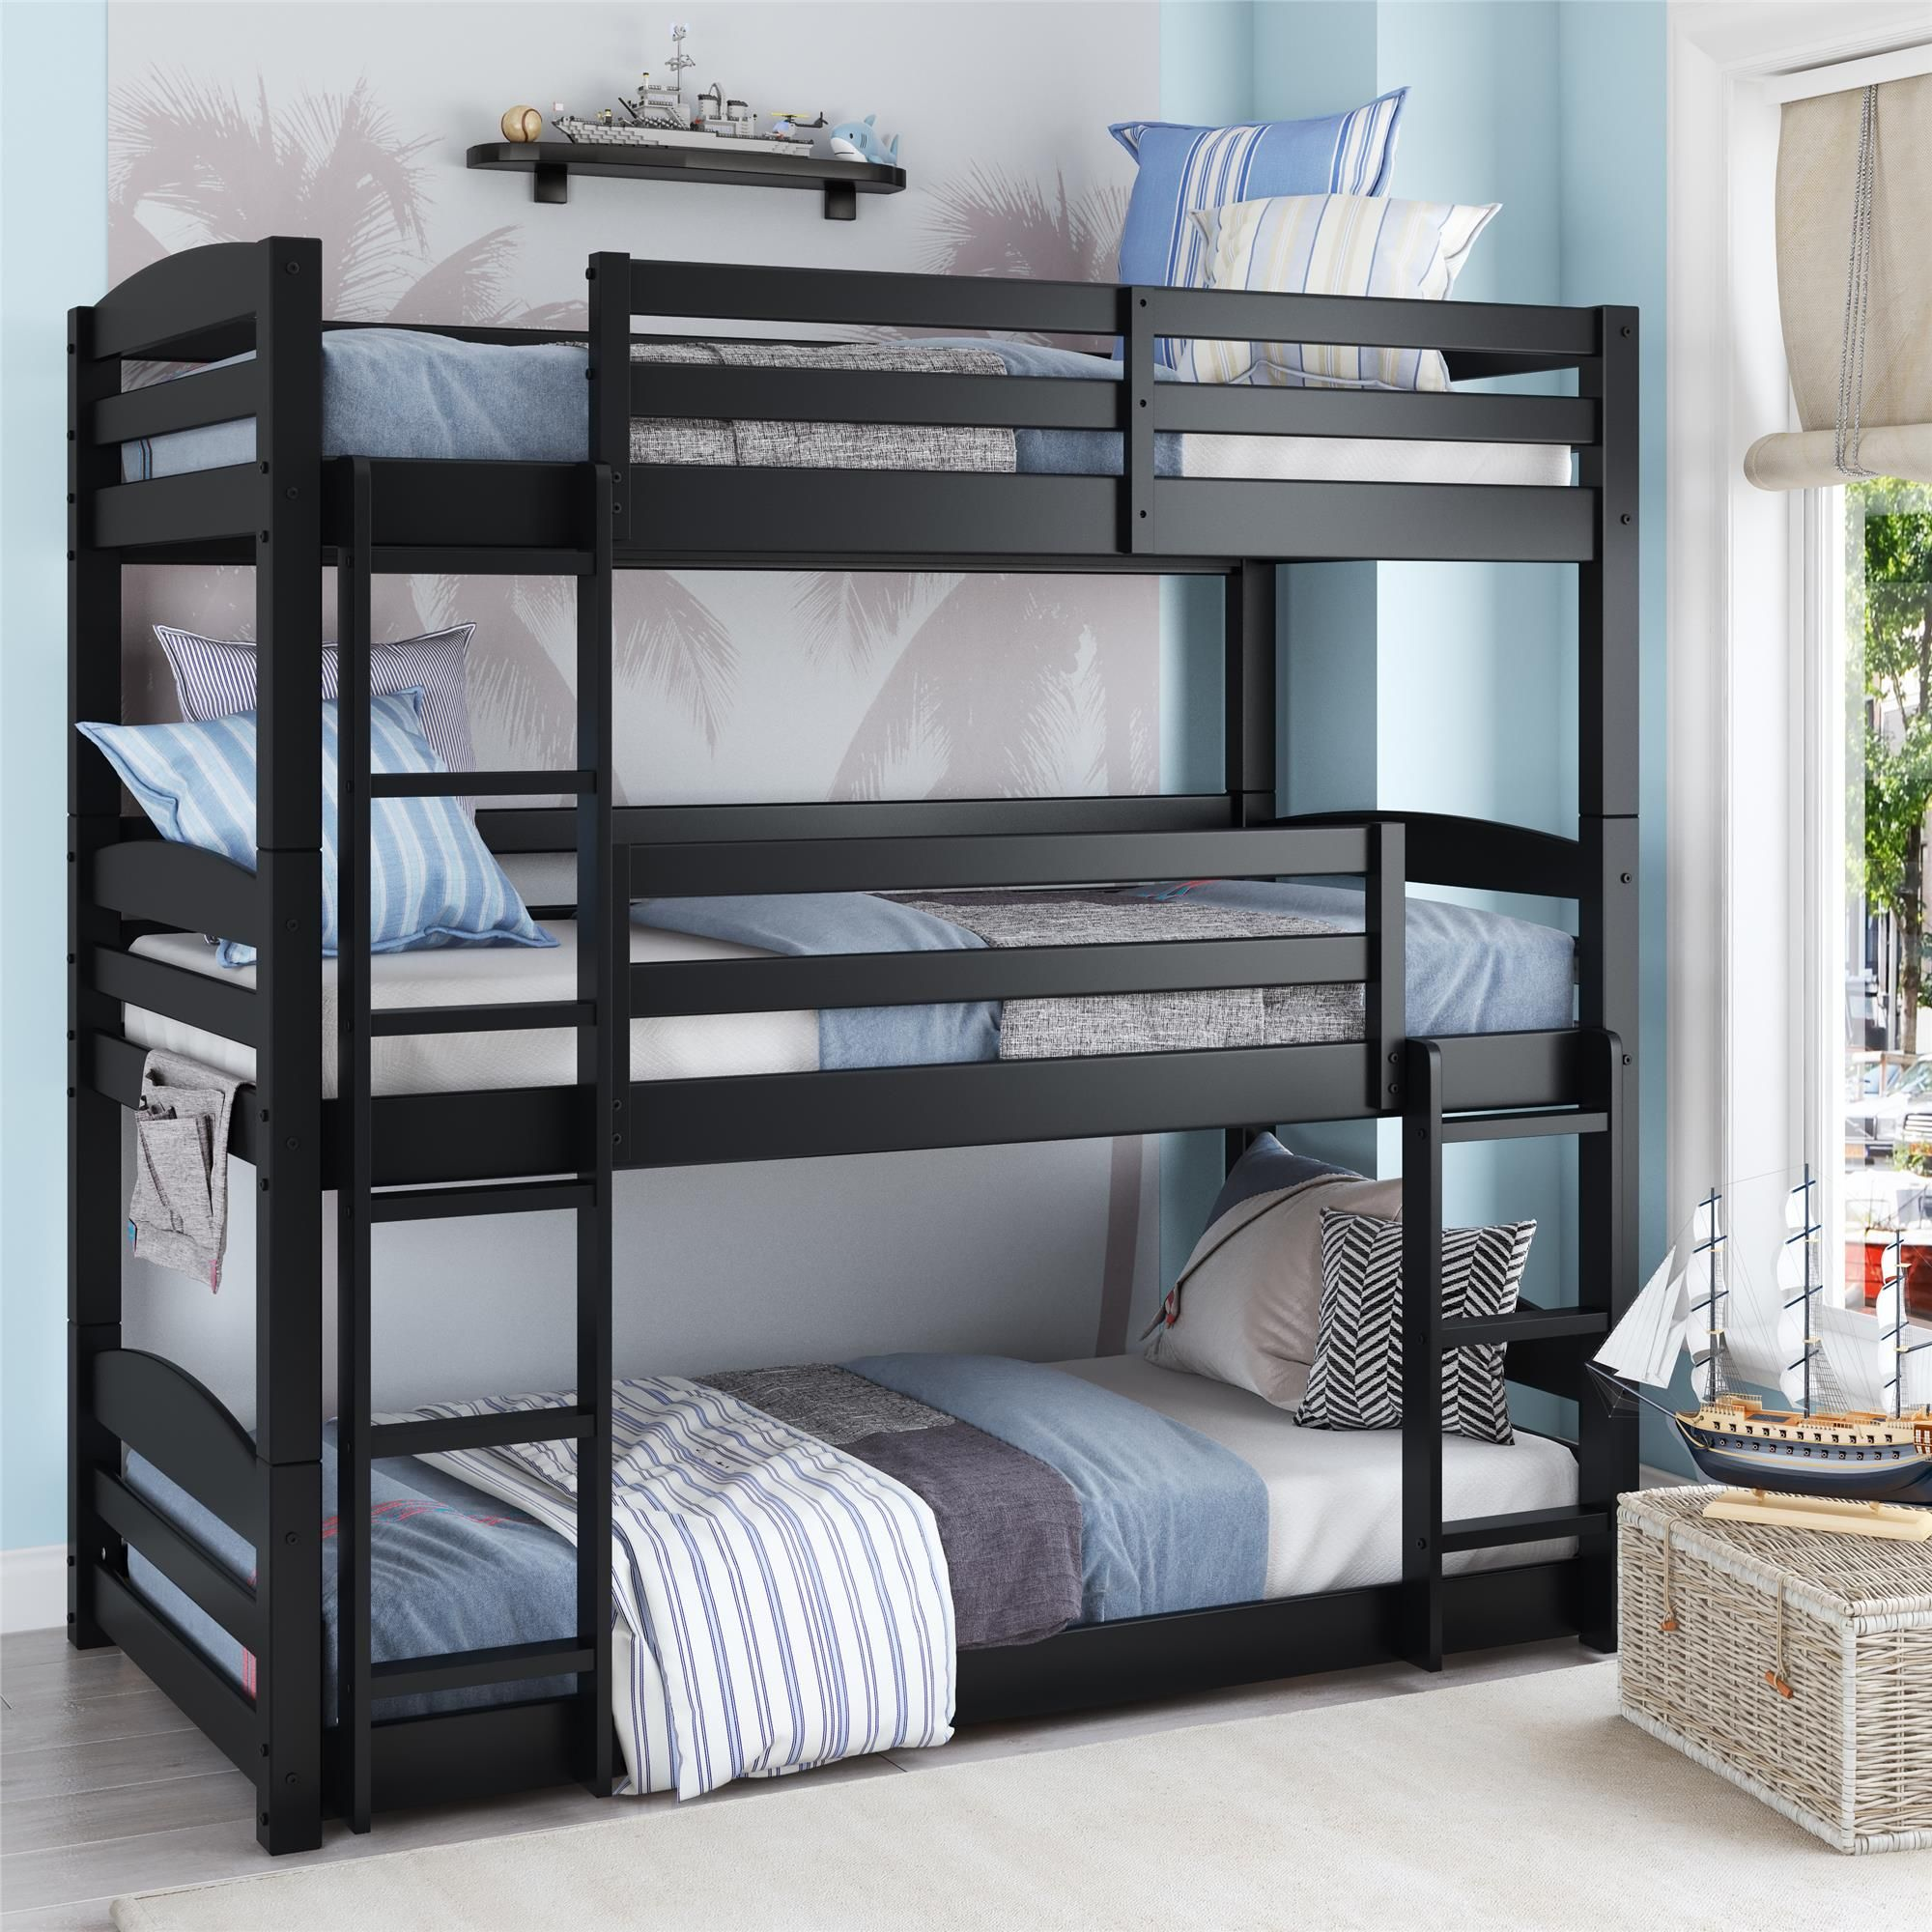 Home in 2020 Triple bunk bed, Bunk beds for boys room